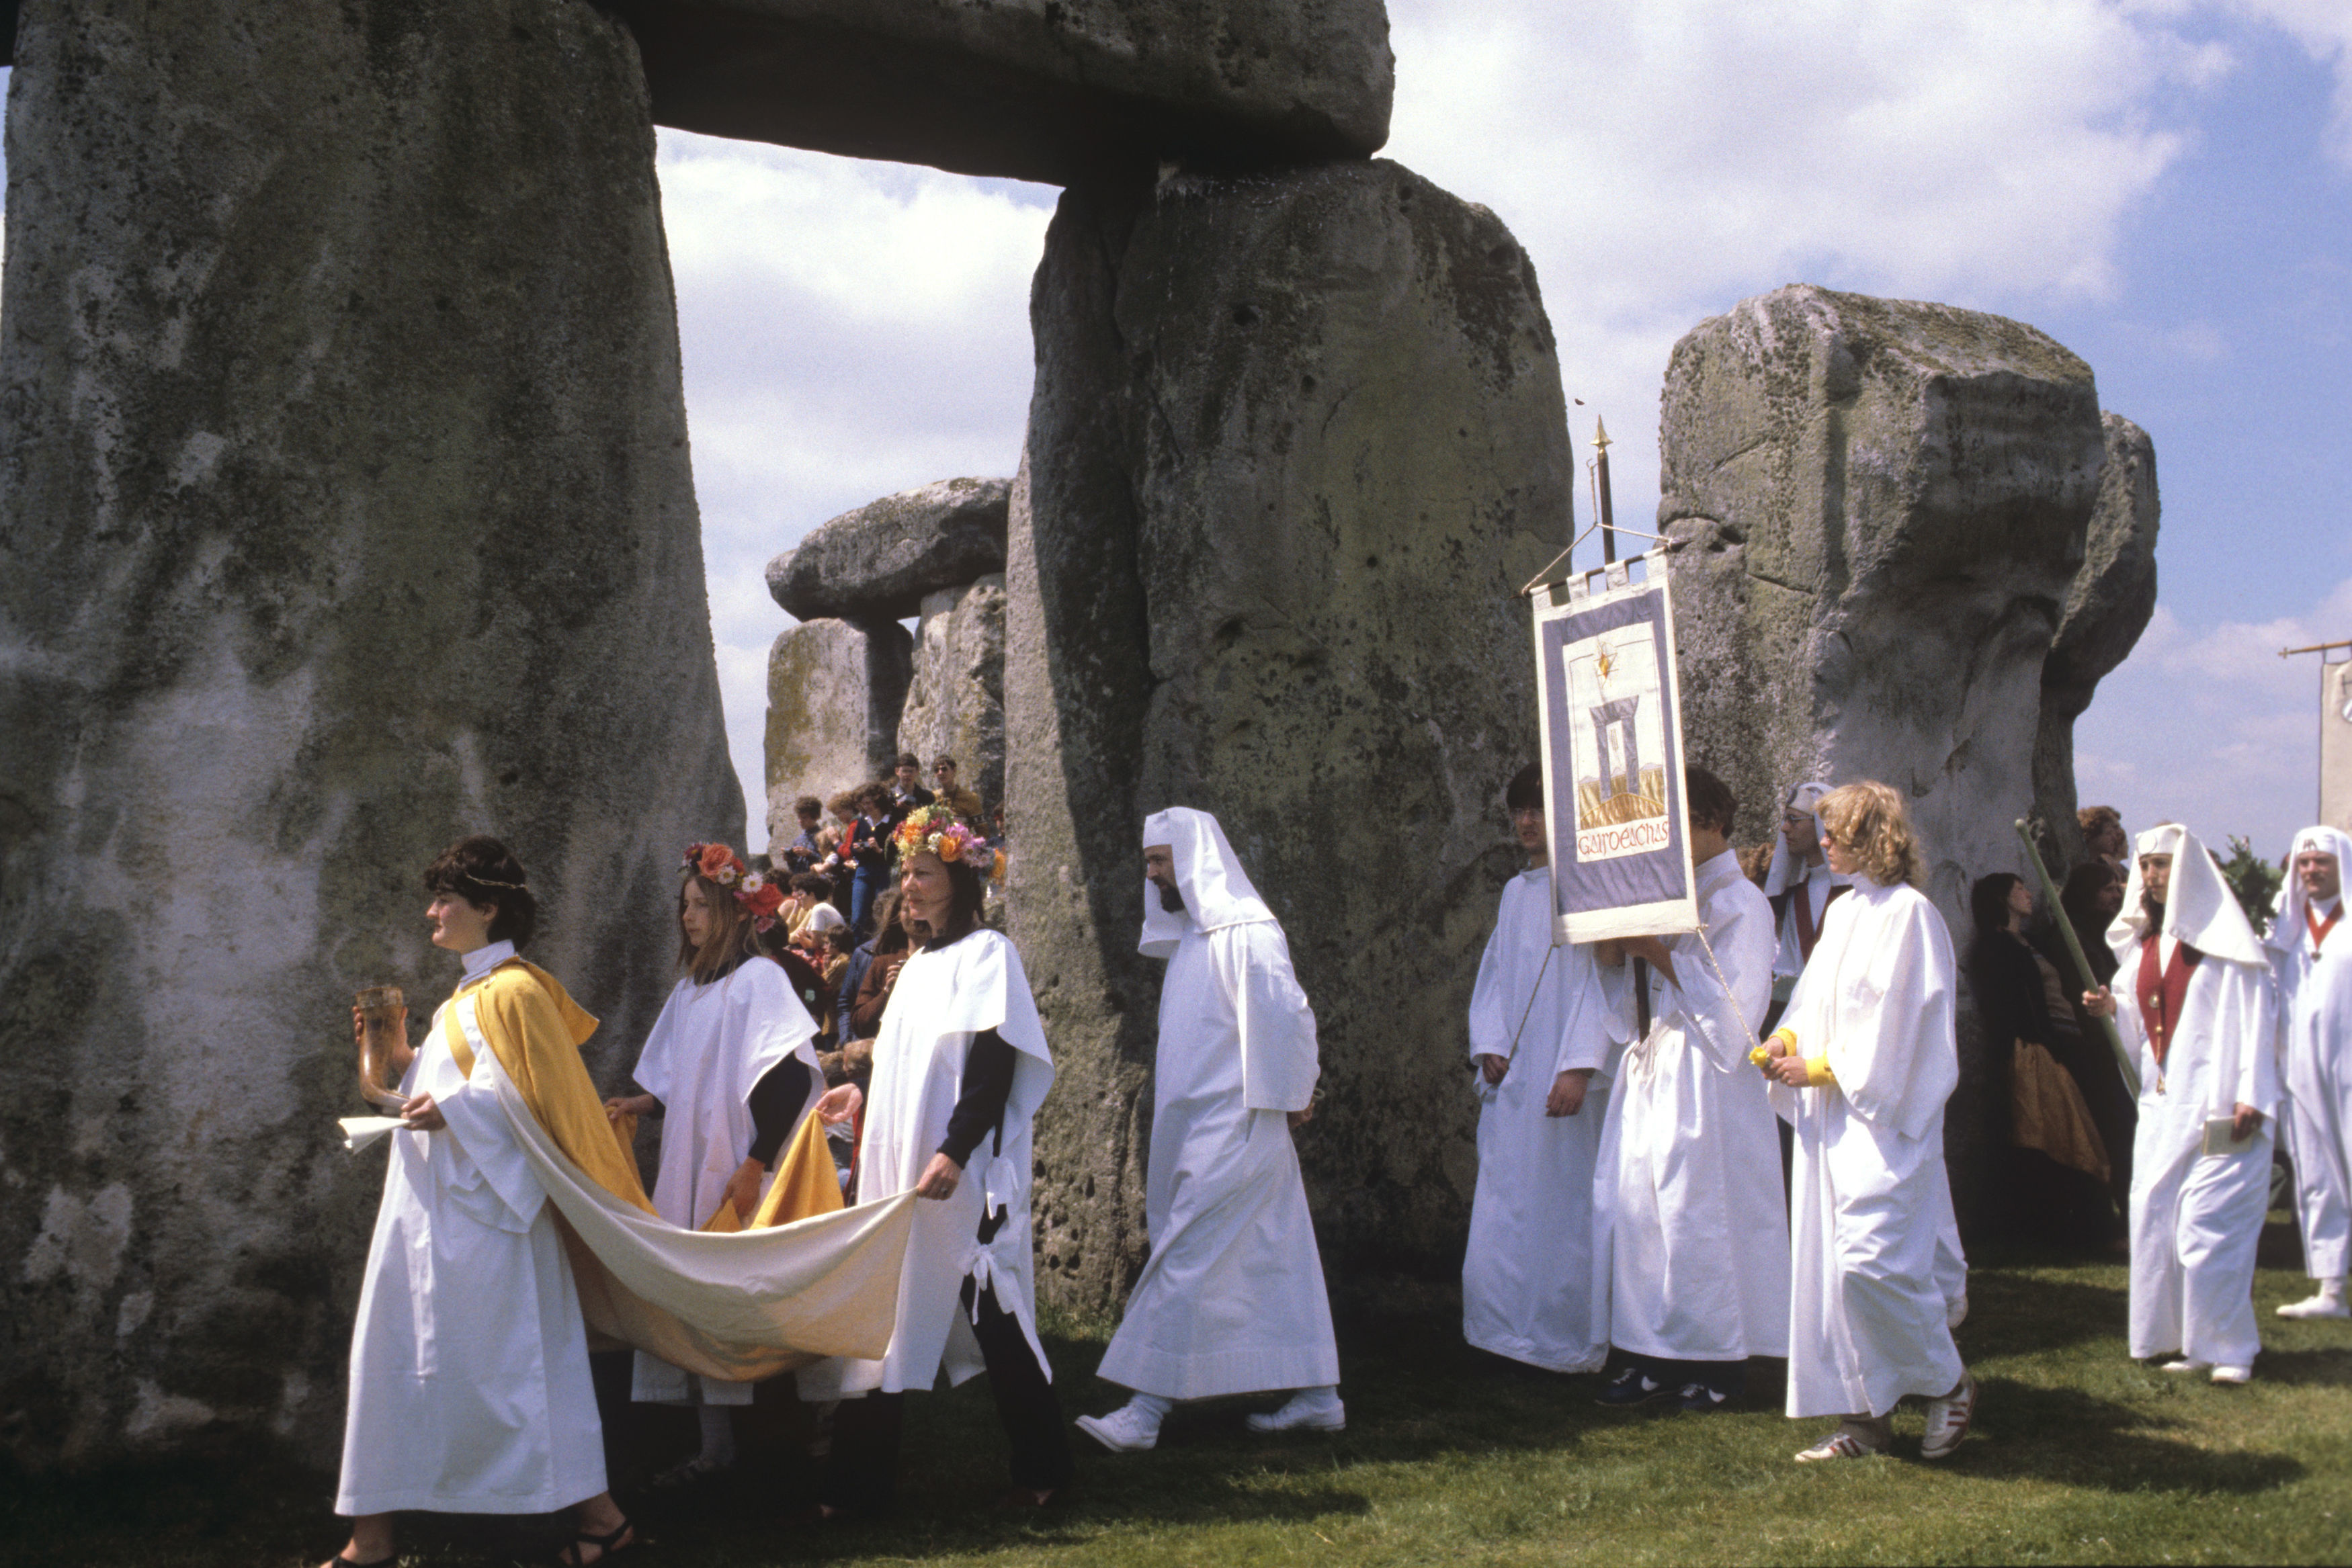 People wearing white robes during a procession in 1981 celebrating the Midsummer Solstice at Stonehenge